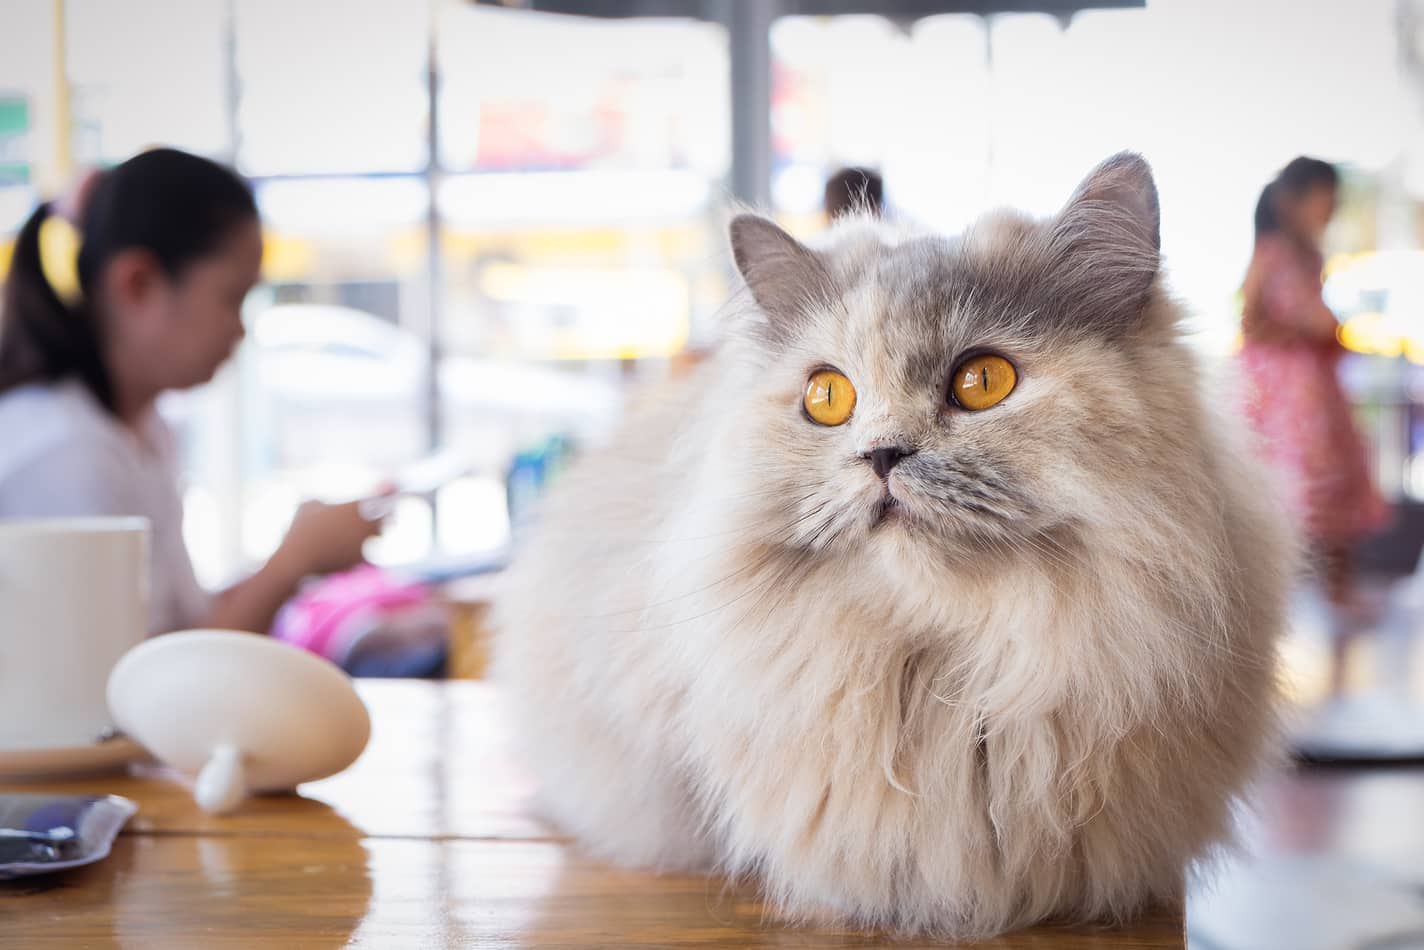 Fluffy white and gray cat sitting on wood table in cat cafe